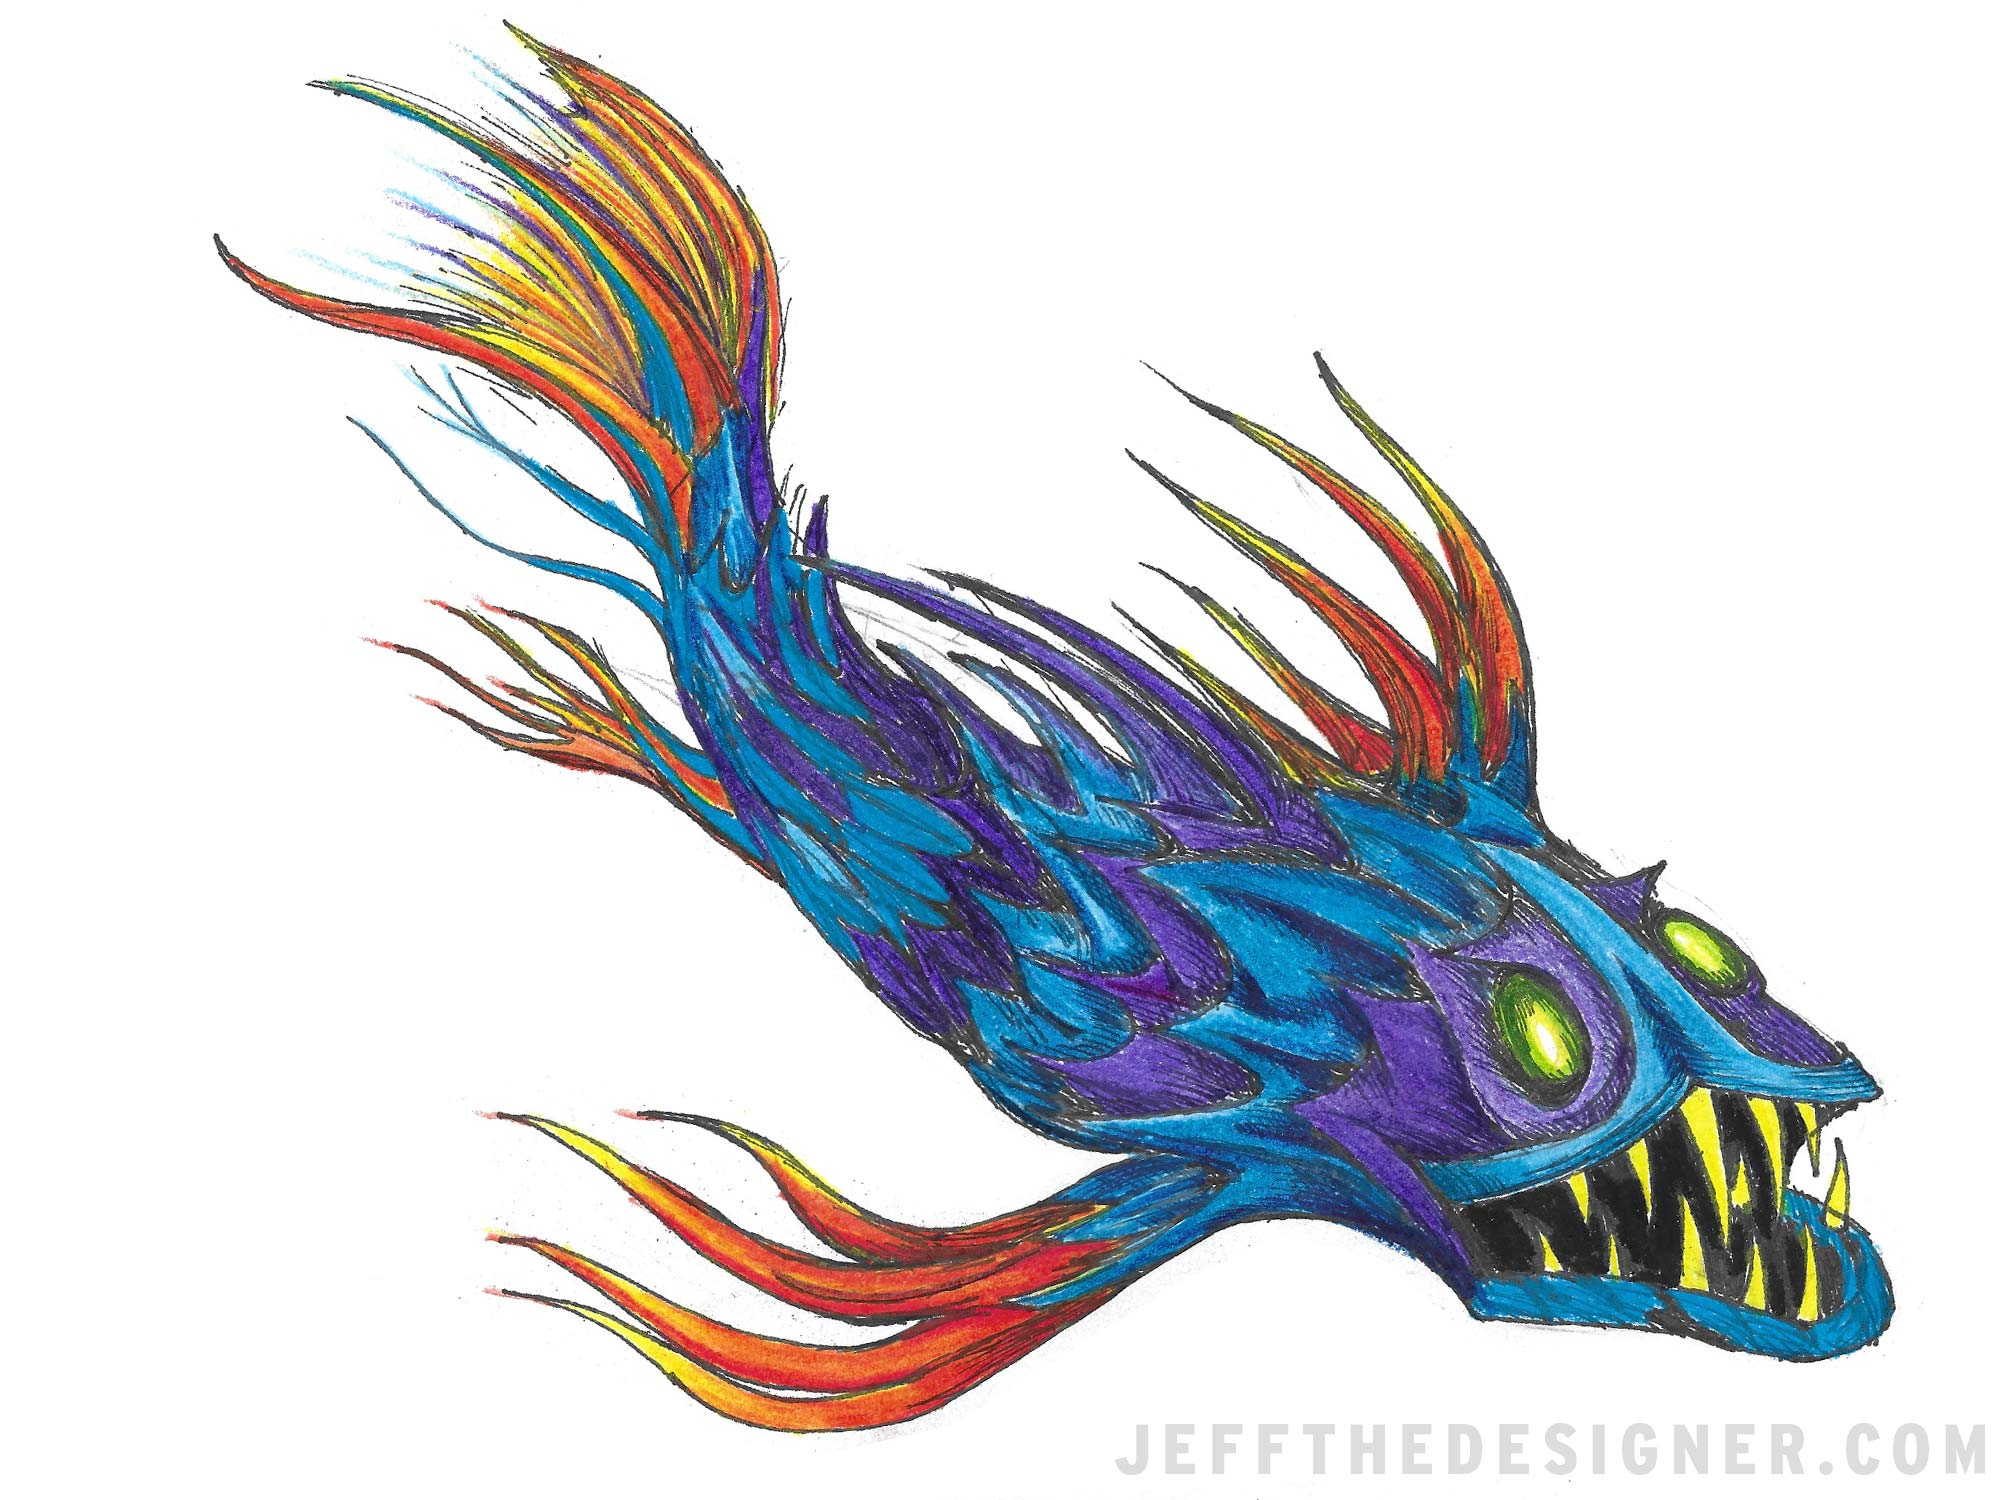 Spooky Fish Hand Drawn Colored Pencils JeffTheDesigner